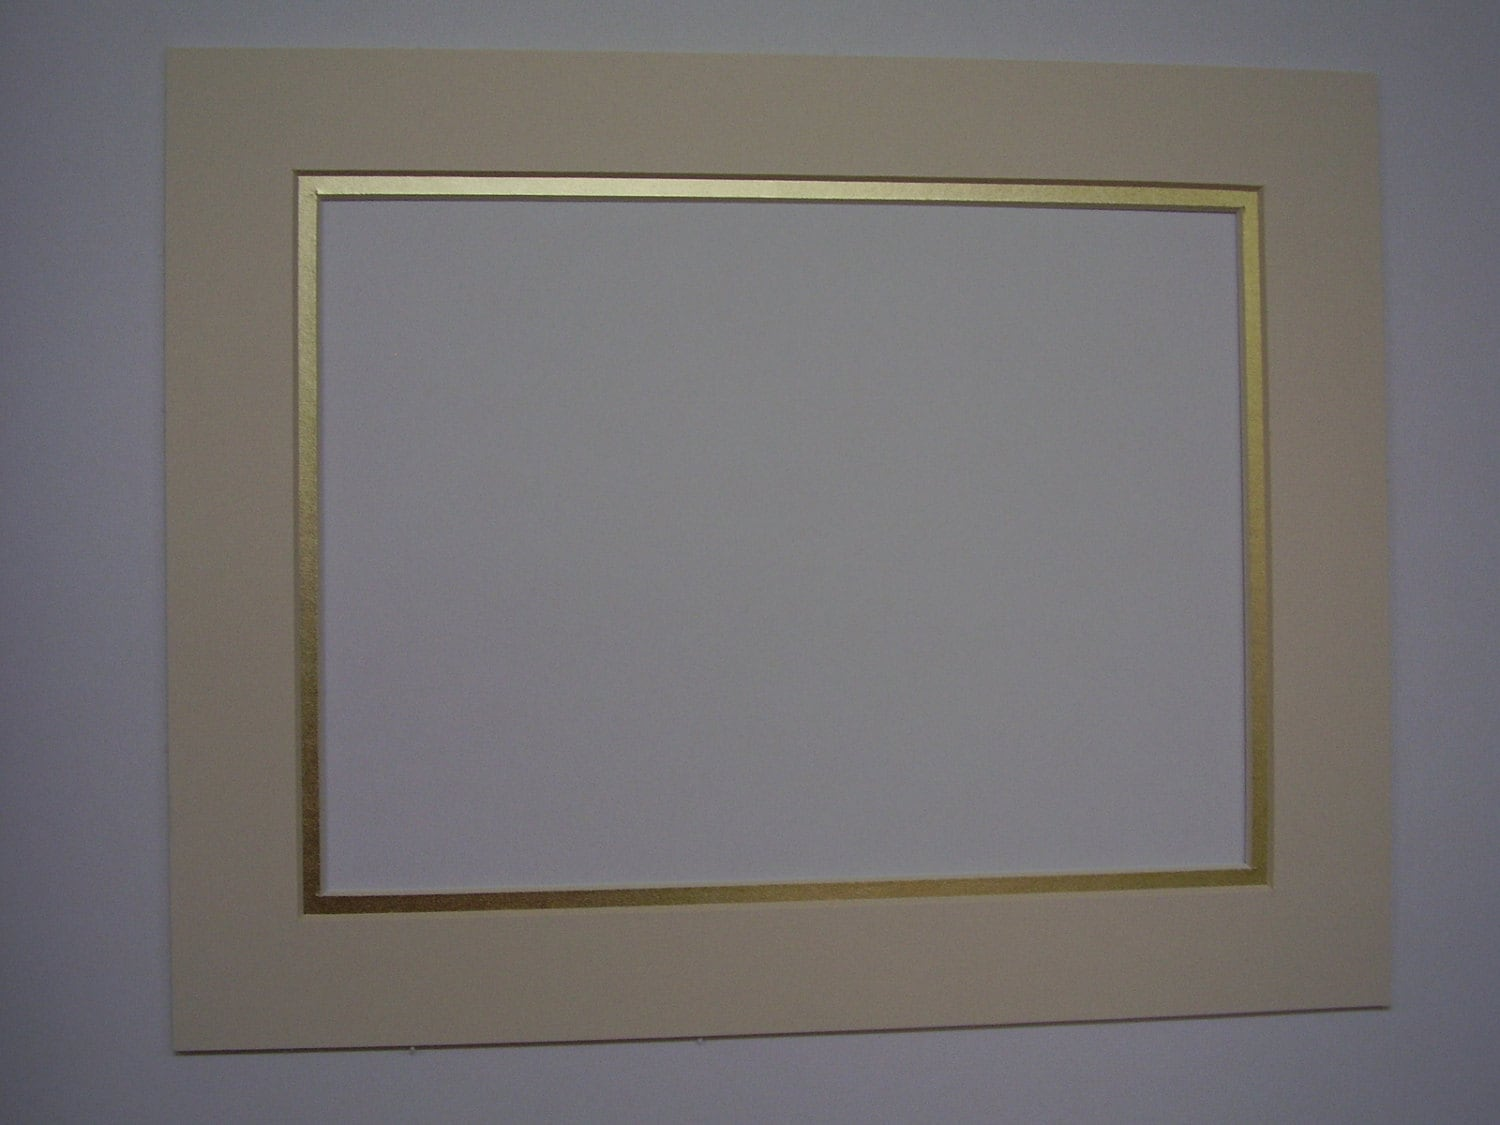 Picture Mat Diploma Size Mat Ivory With Shiny Gold 11x14